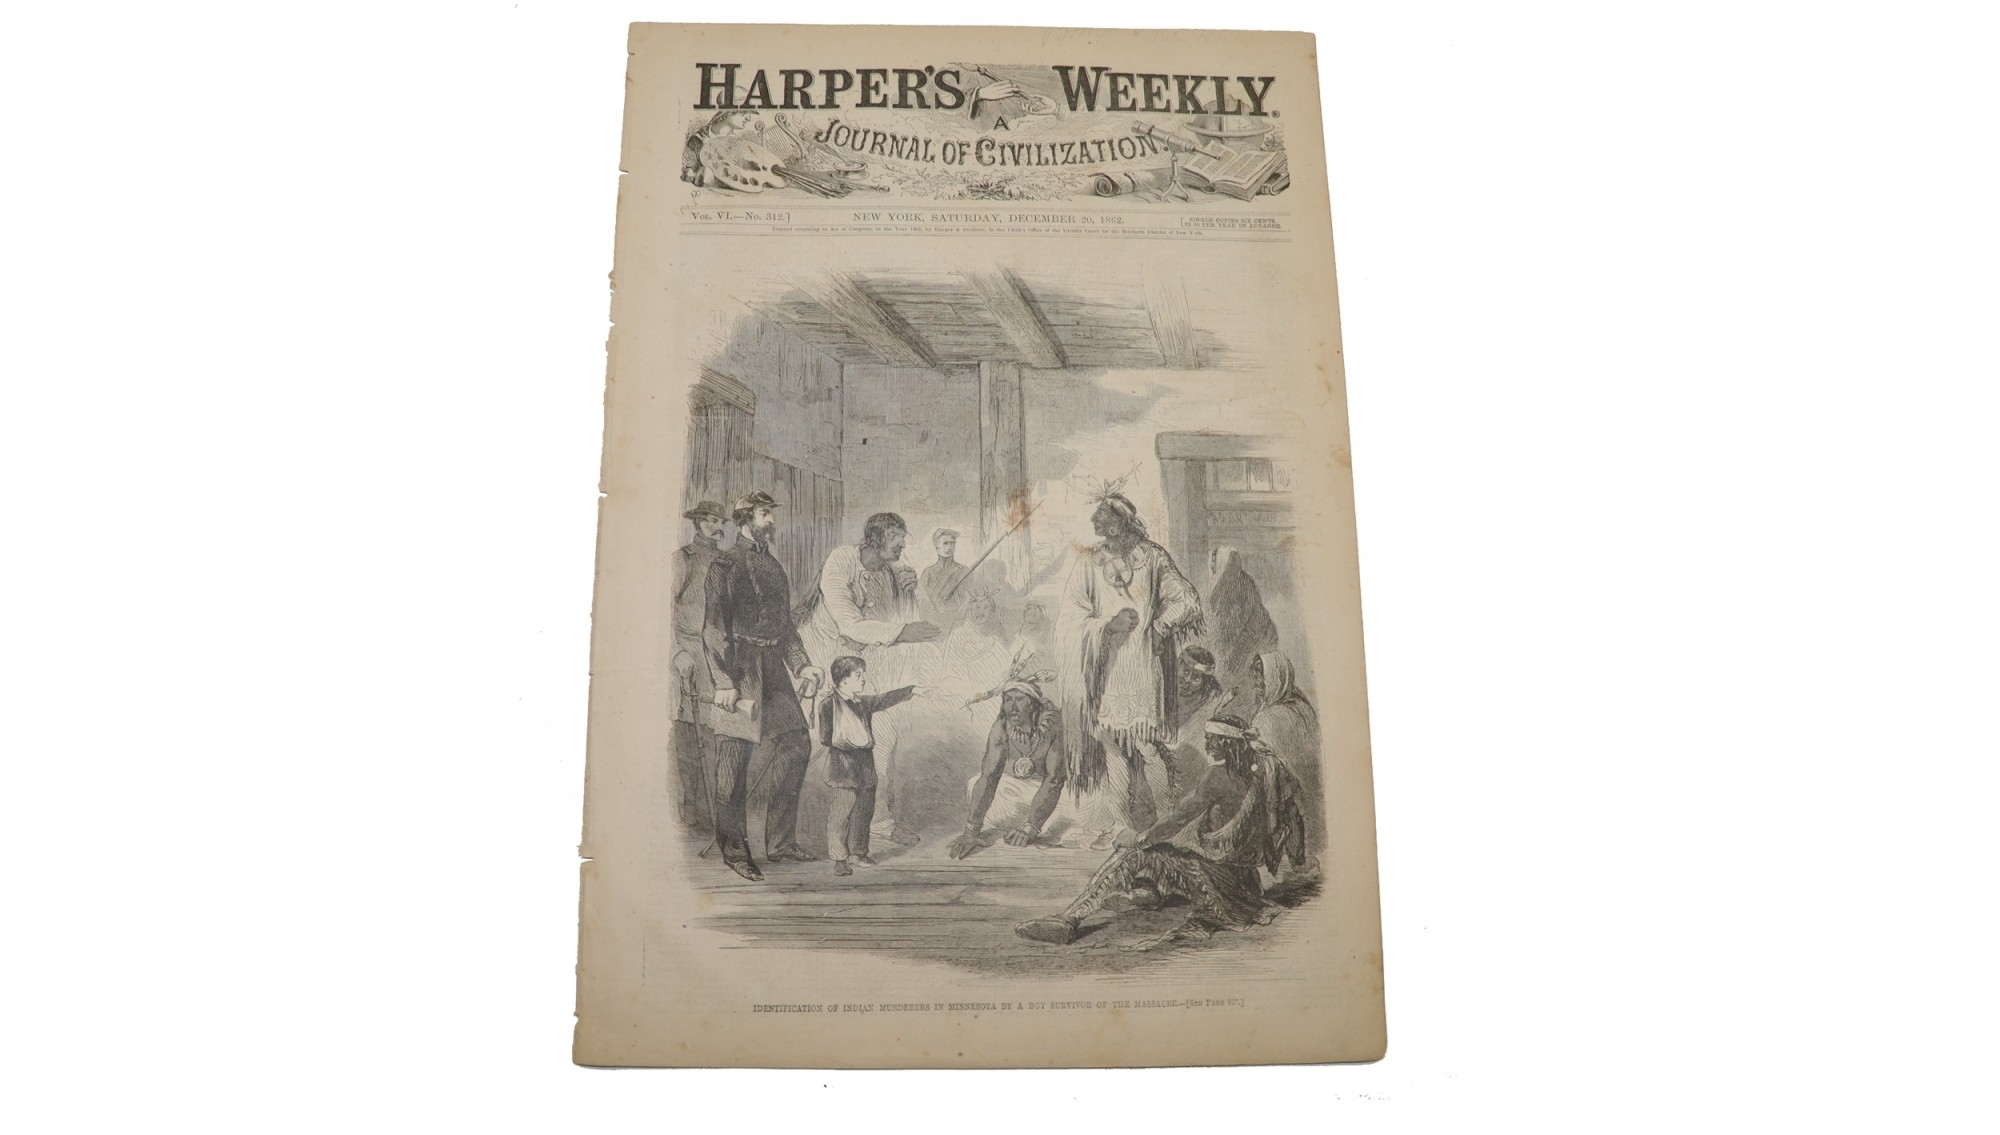 HARPER'S WEEKLY DATED DECMEBER 20, 1862 – 1862 INDIAN UPRISING